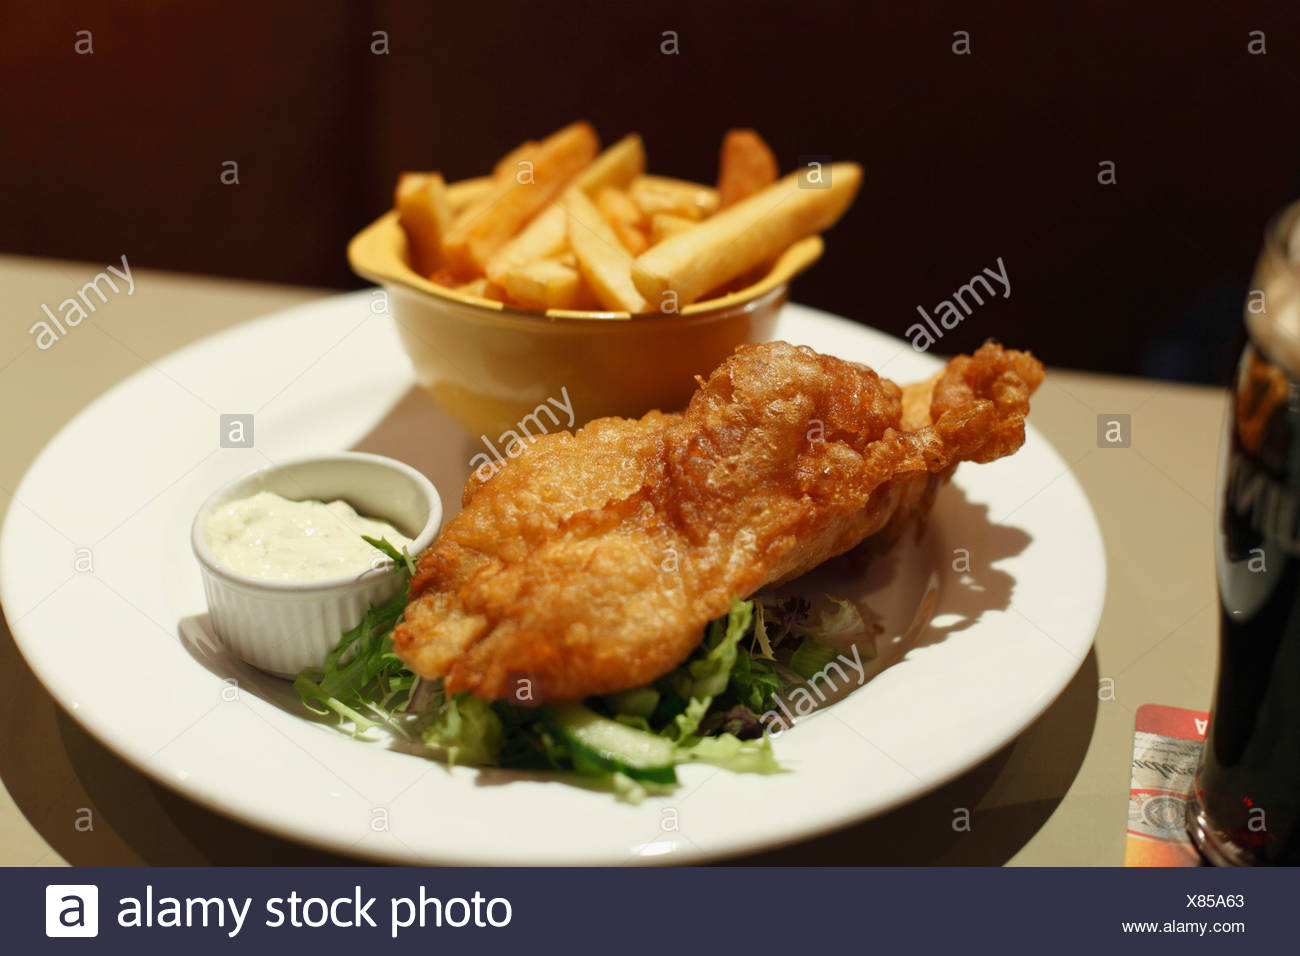 Republic of Ireland, County Fingal, Skerries, Close up of fish and chips in plate Stock Photo